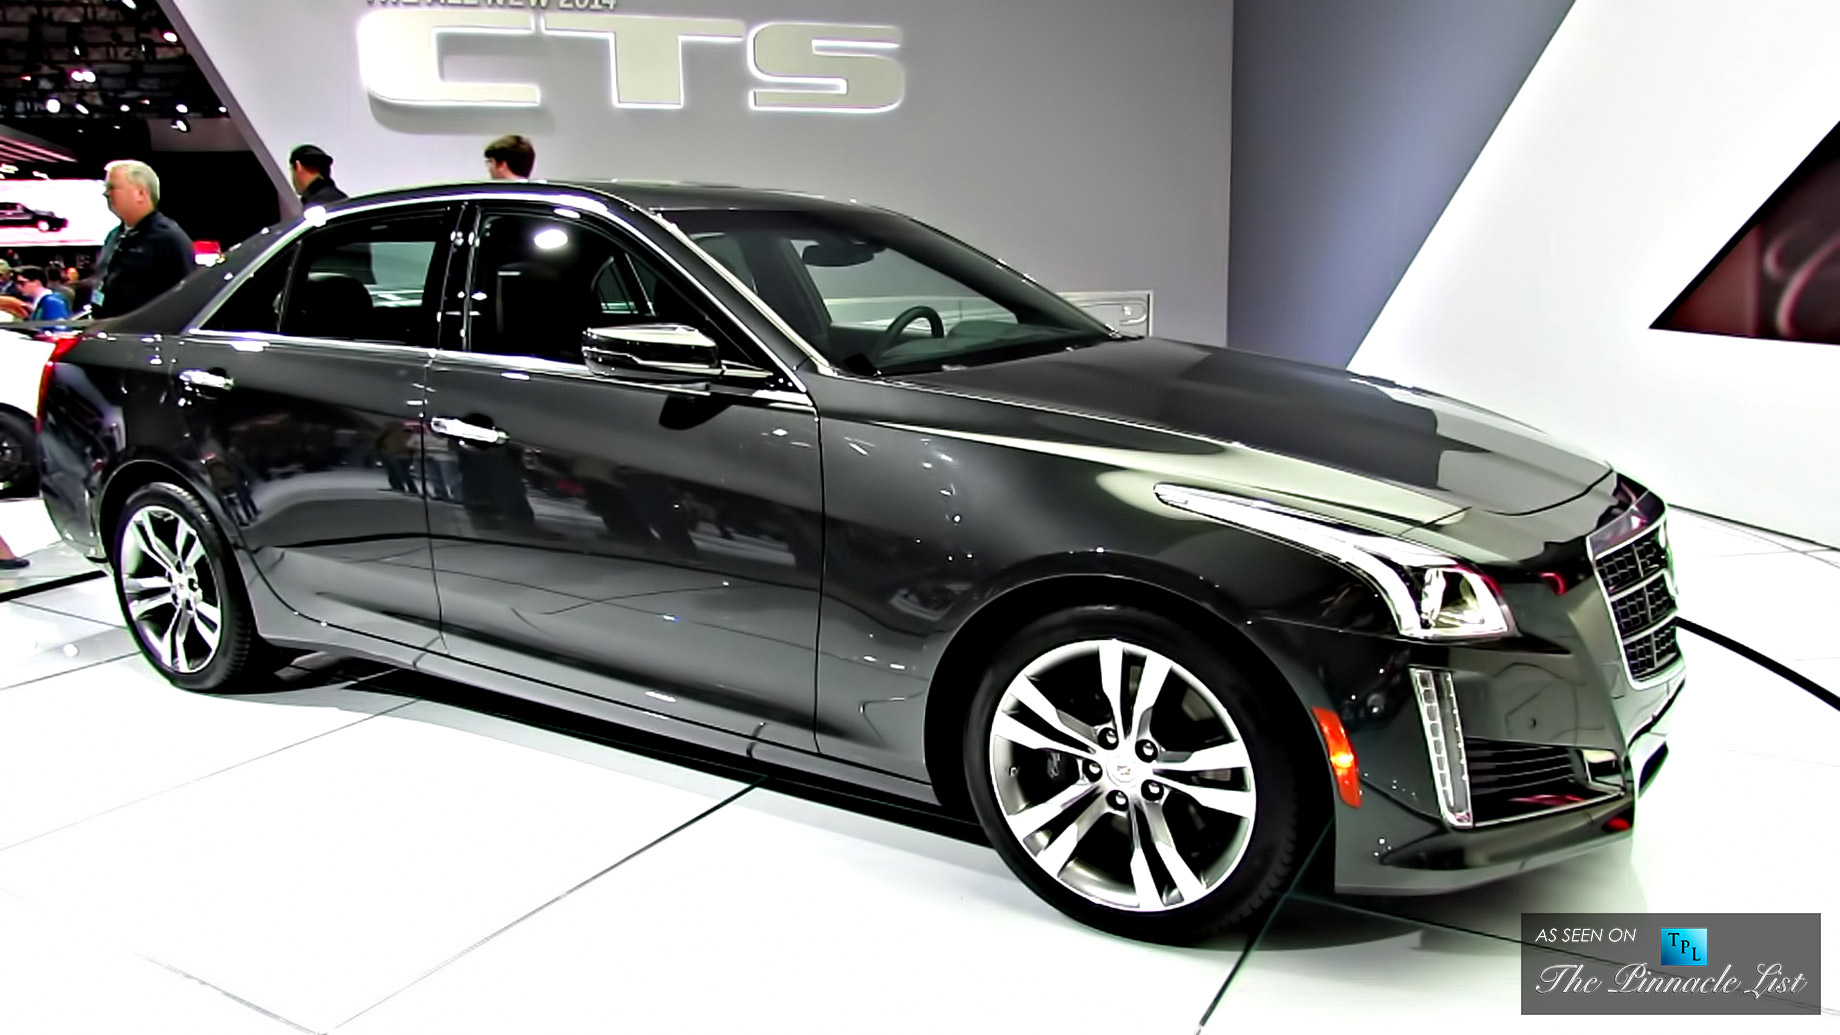 Cadillac CTS - The New Car Market is Back - 4 Hot Cars Sure to Impress in 2014